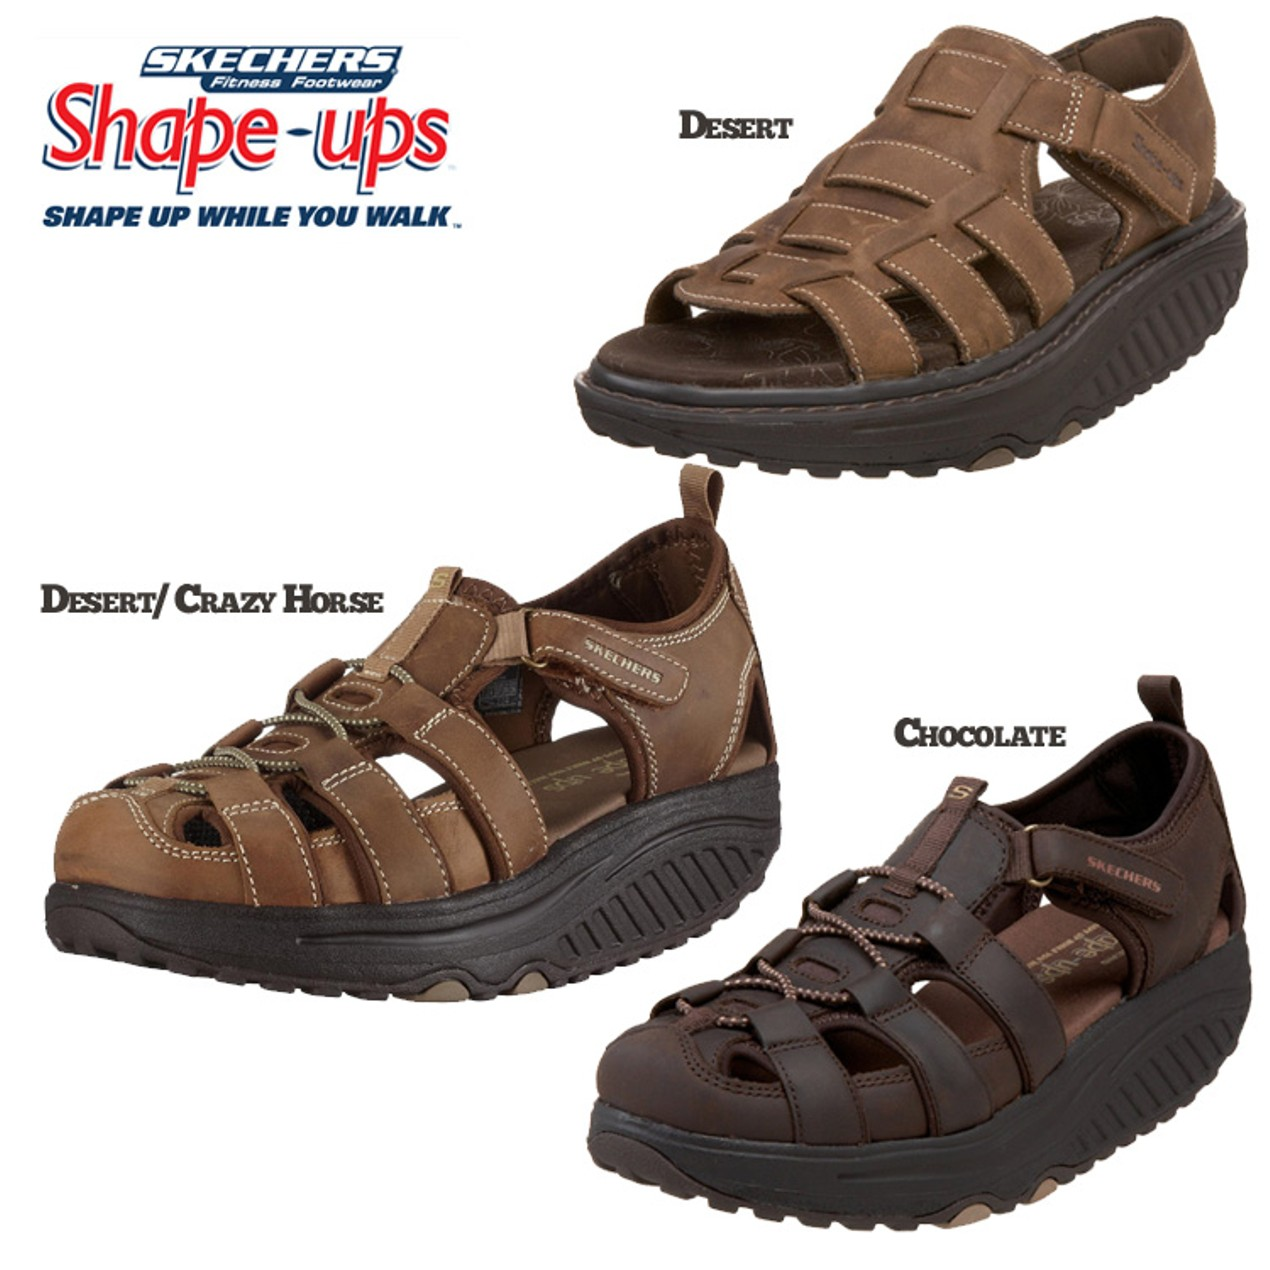 4b747a0f70ff Skechers Women s Shape Ups - Trim Step Walking Sandal   Strolling Ankle-Strap  Sandal